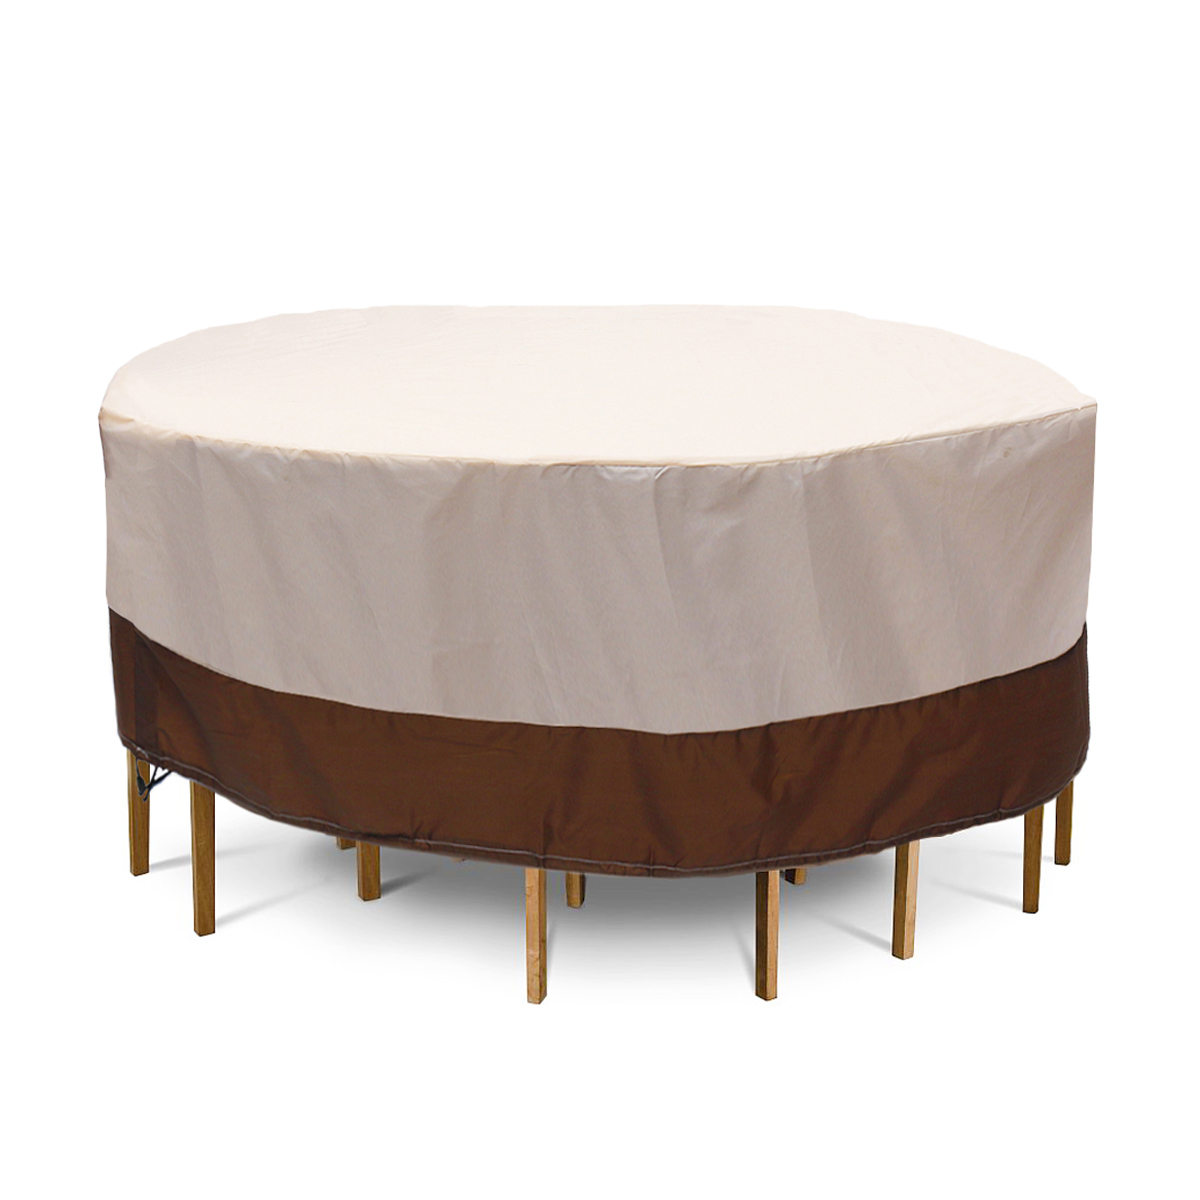 Furniture Dust Cover Fabric: Waterproof Patio Furniture Round Cover Outdoor Table